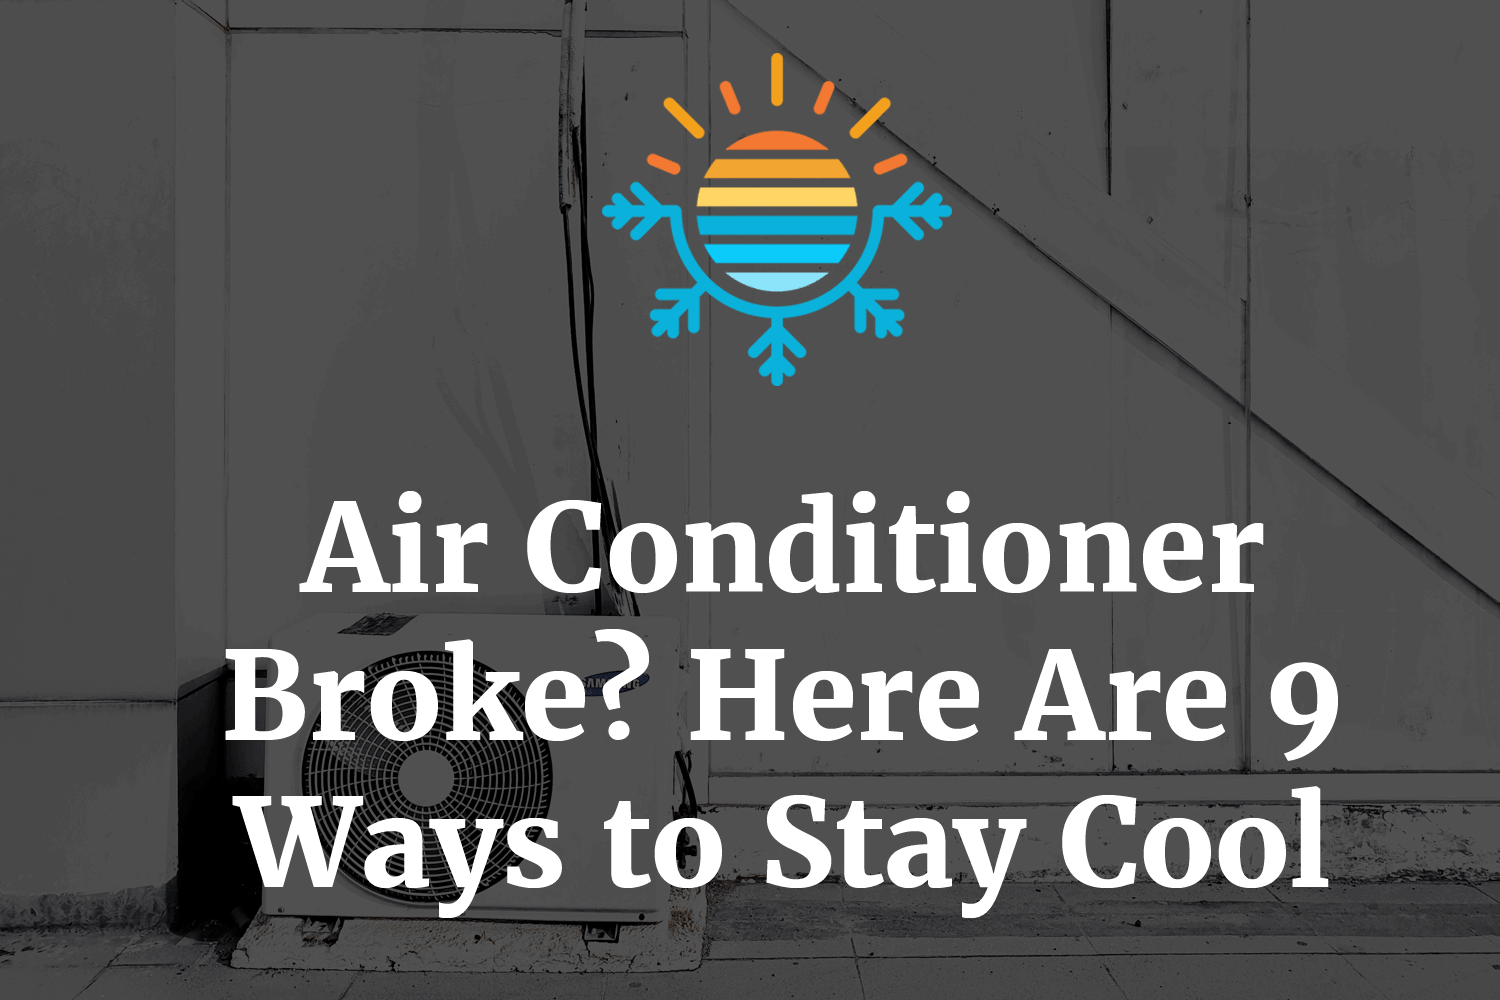 Air Conditioner Broke Here Are 9 Ways to Stay Cool 3